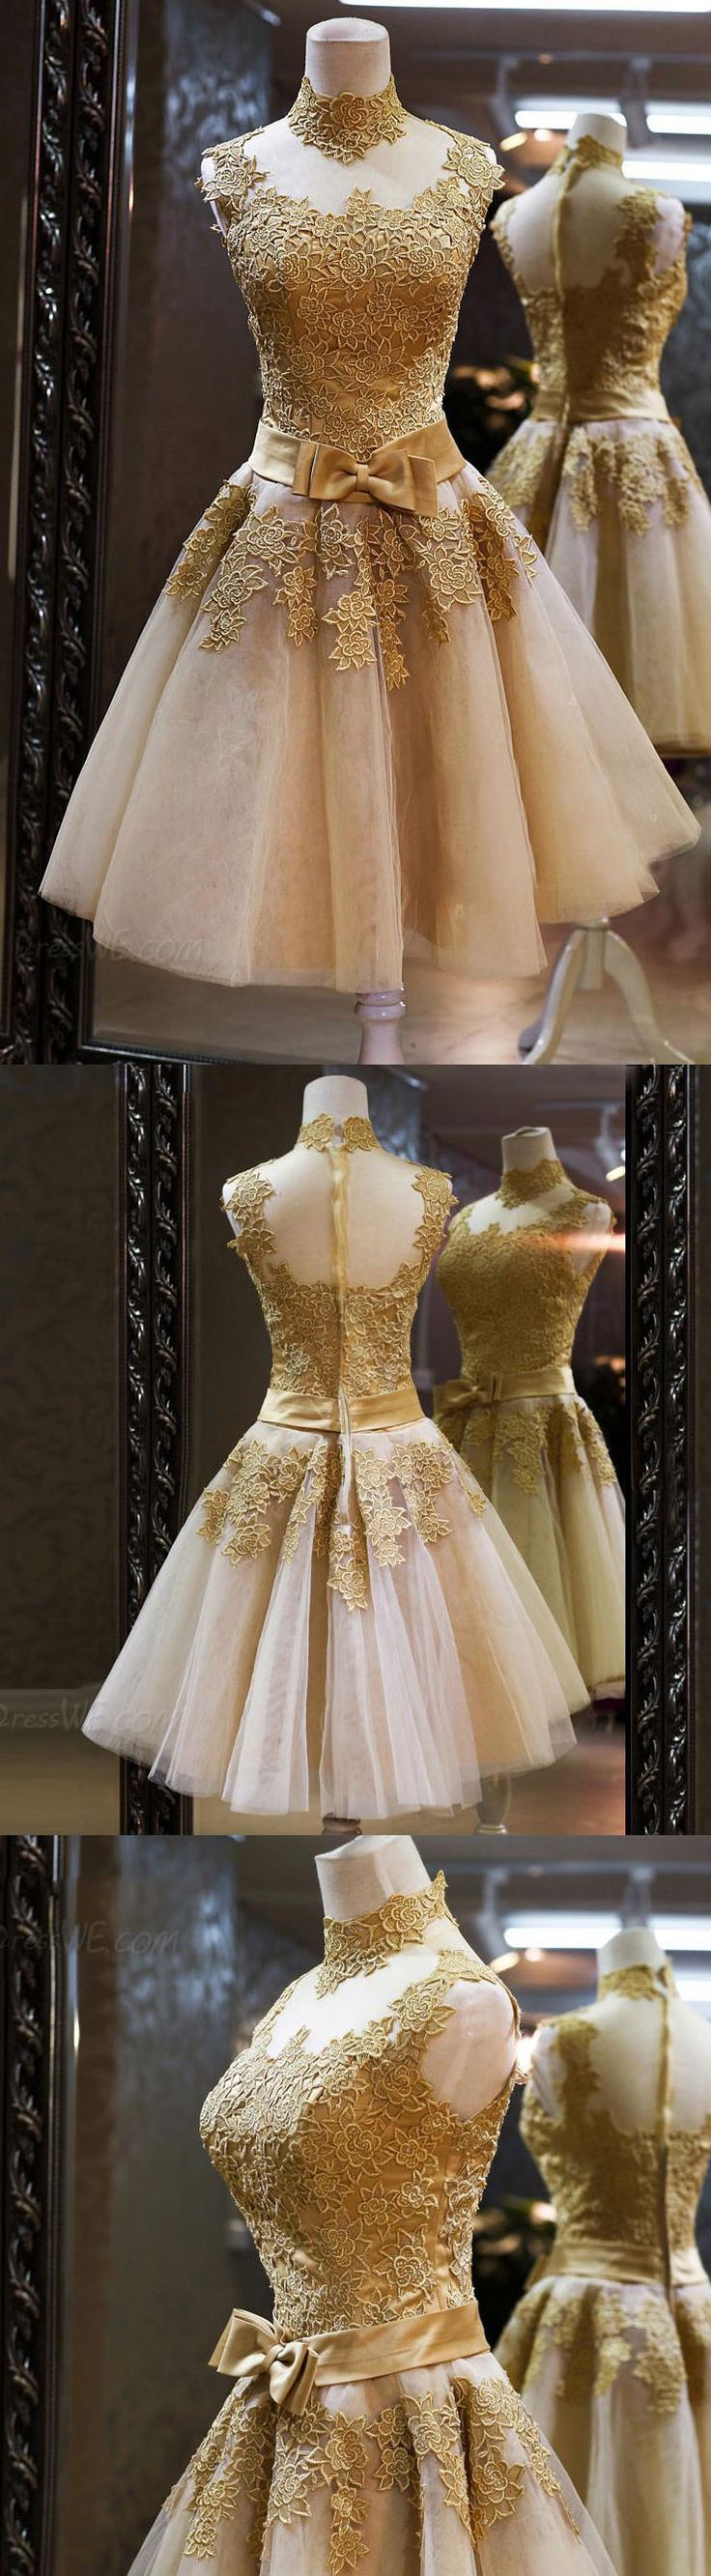 best sweet images on pinterest quince dresses ball gown and